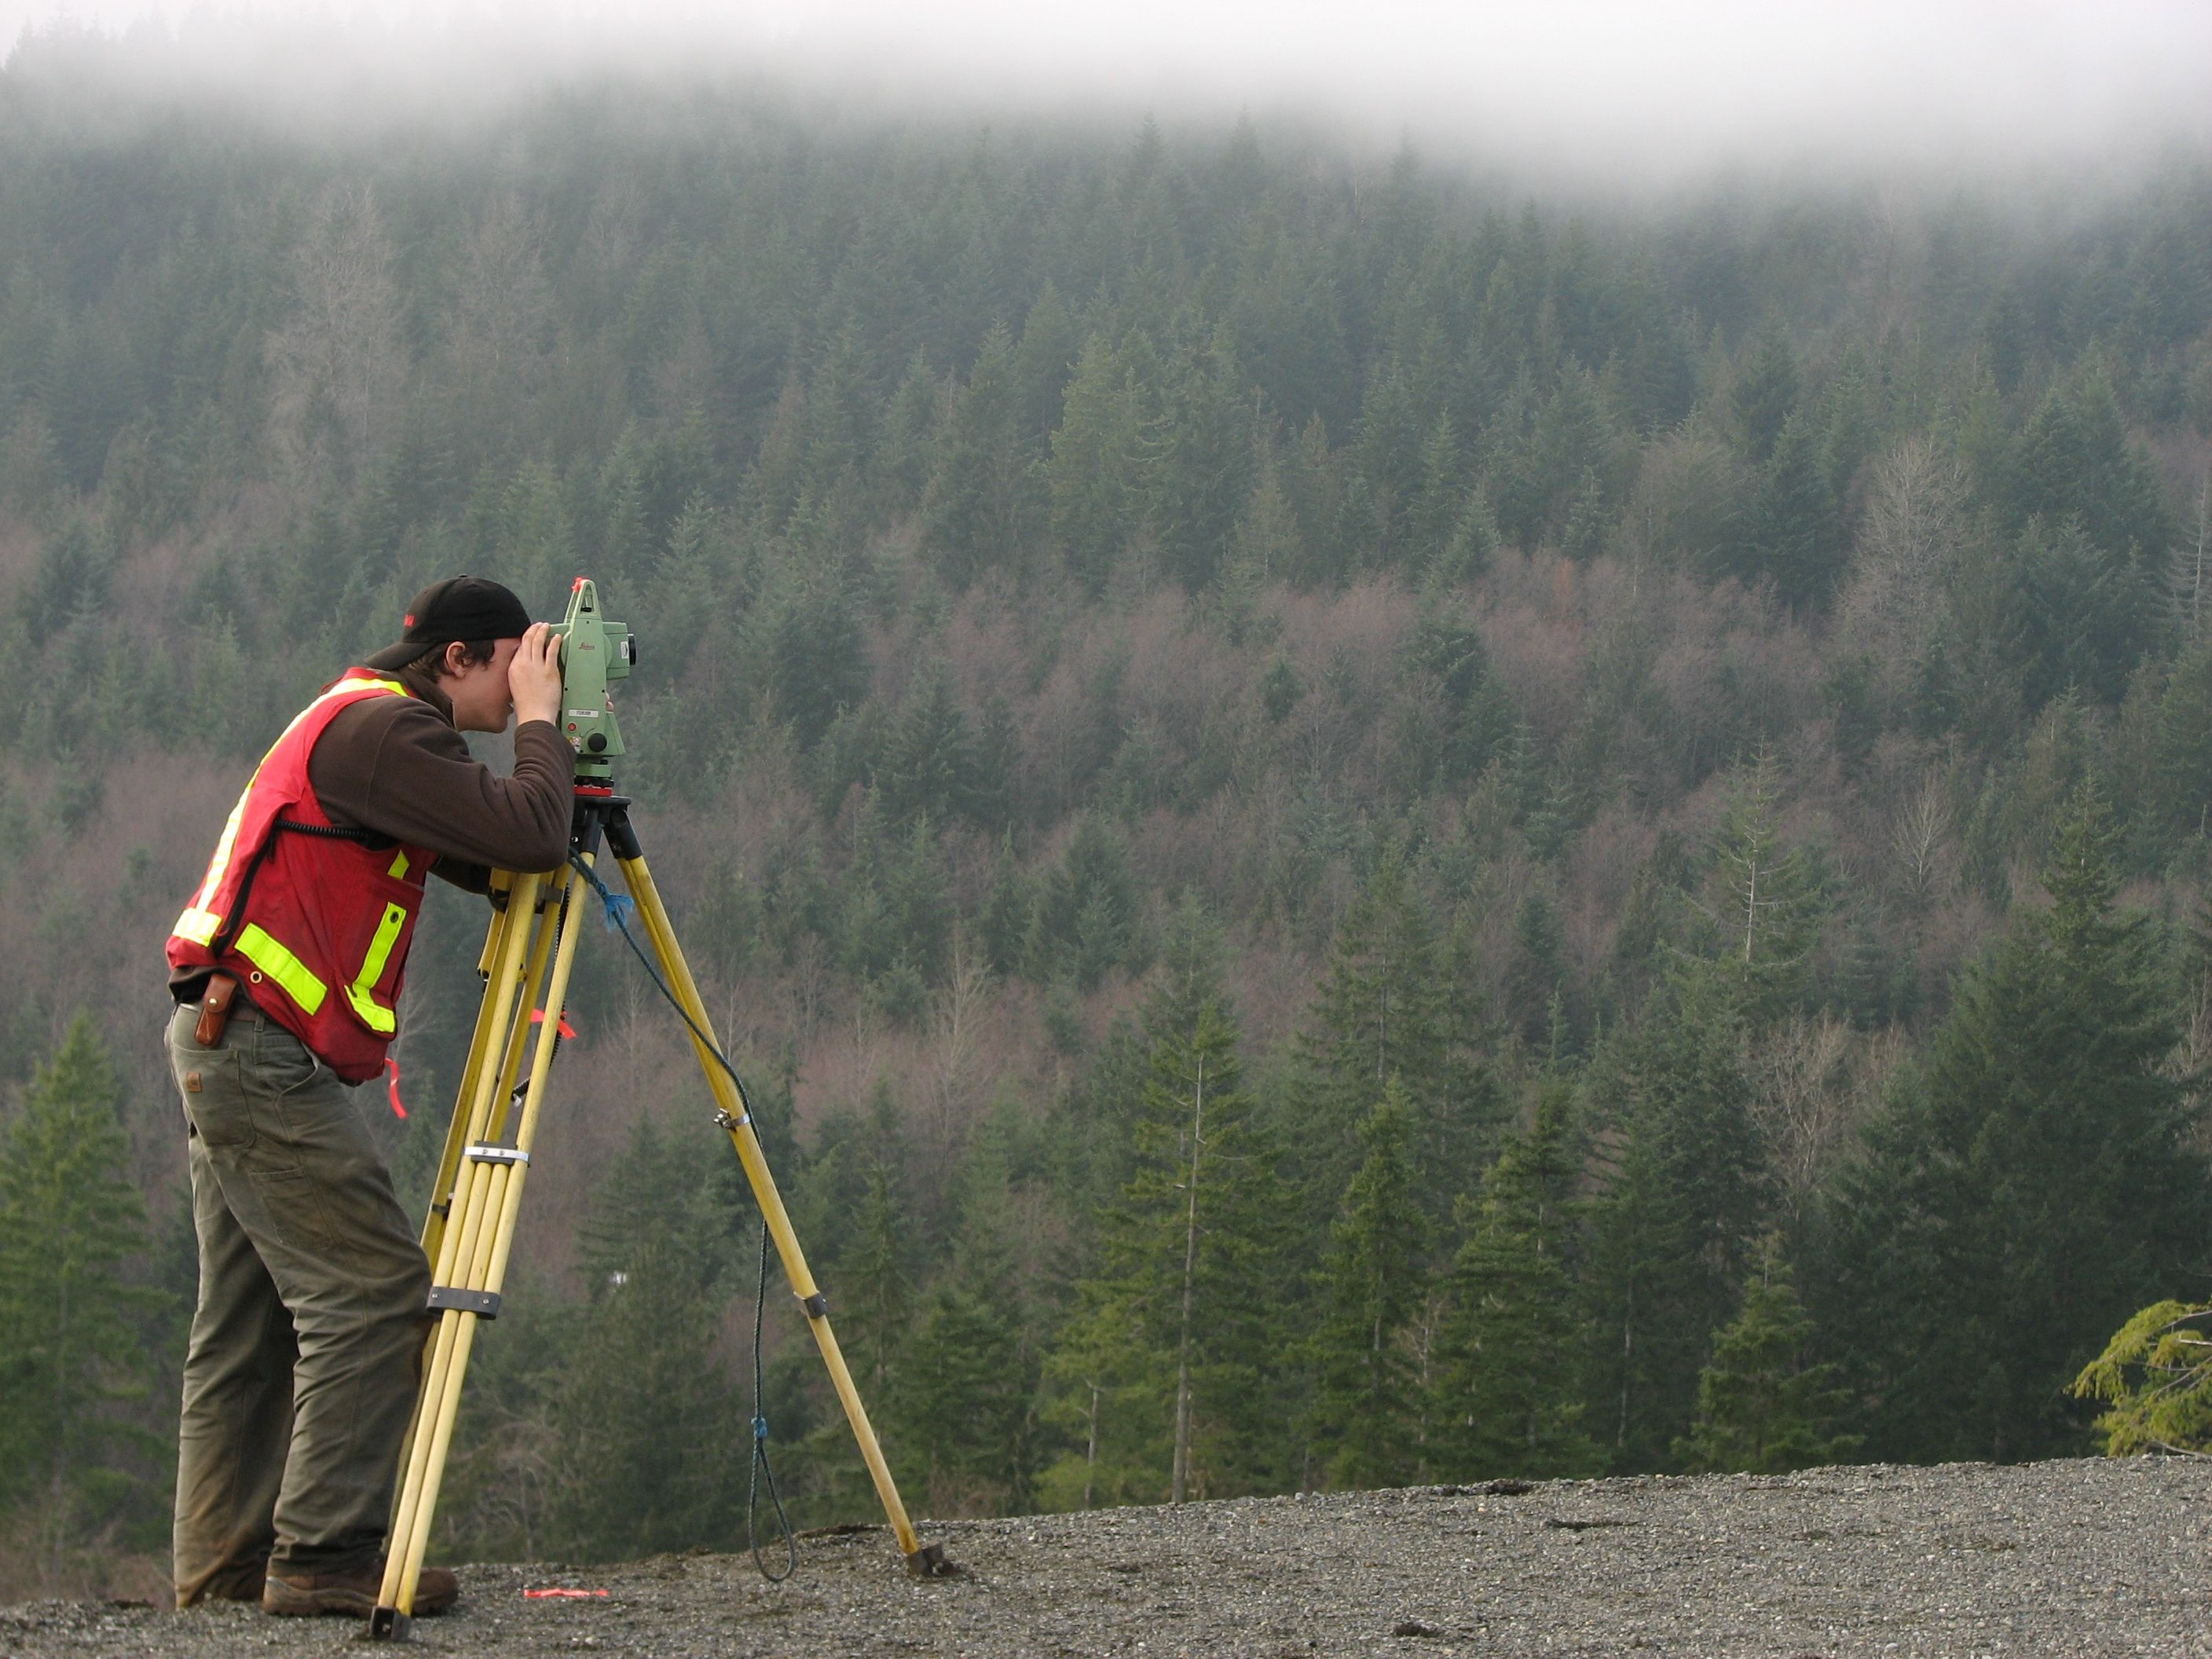 Pin By Thomas Simmons On Land Surveying In 2020 Land Surveying